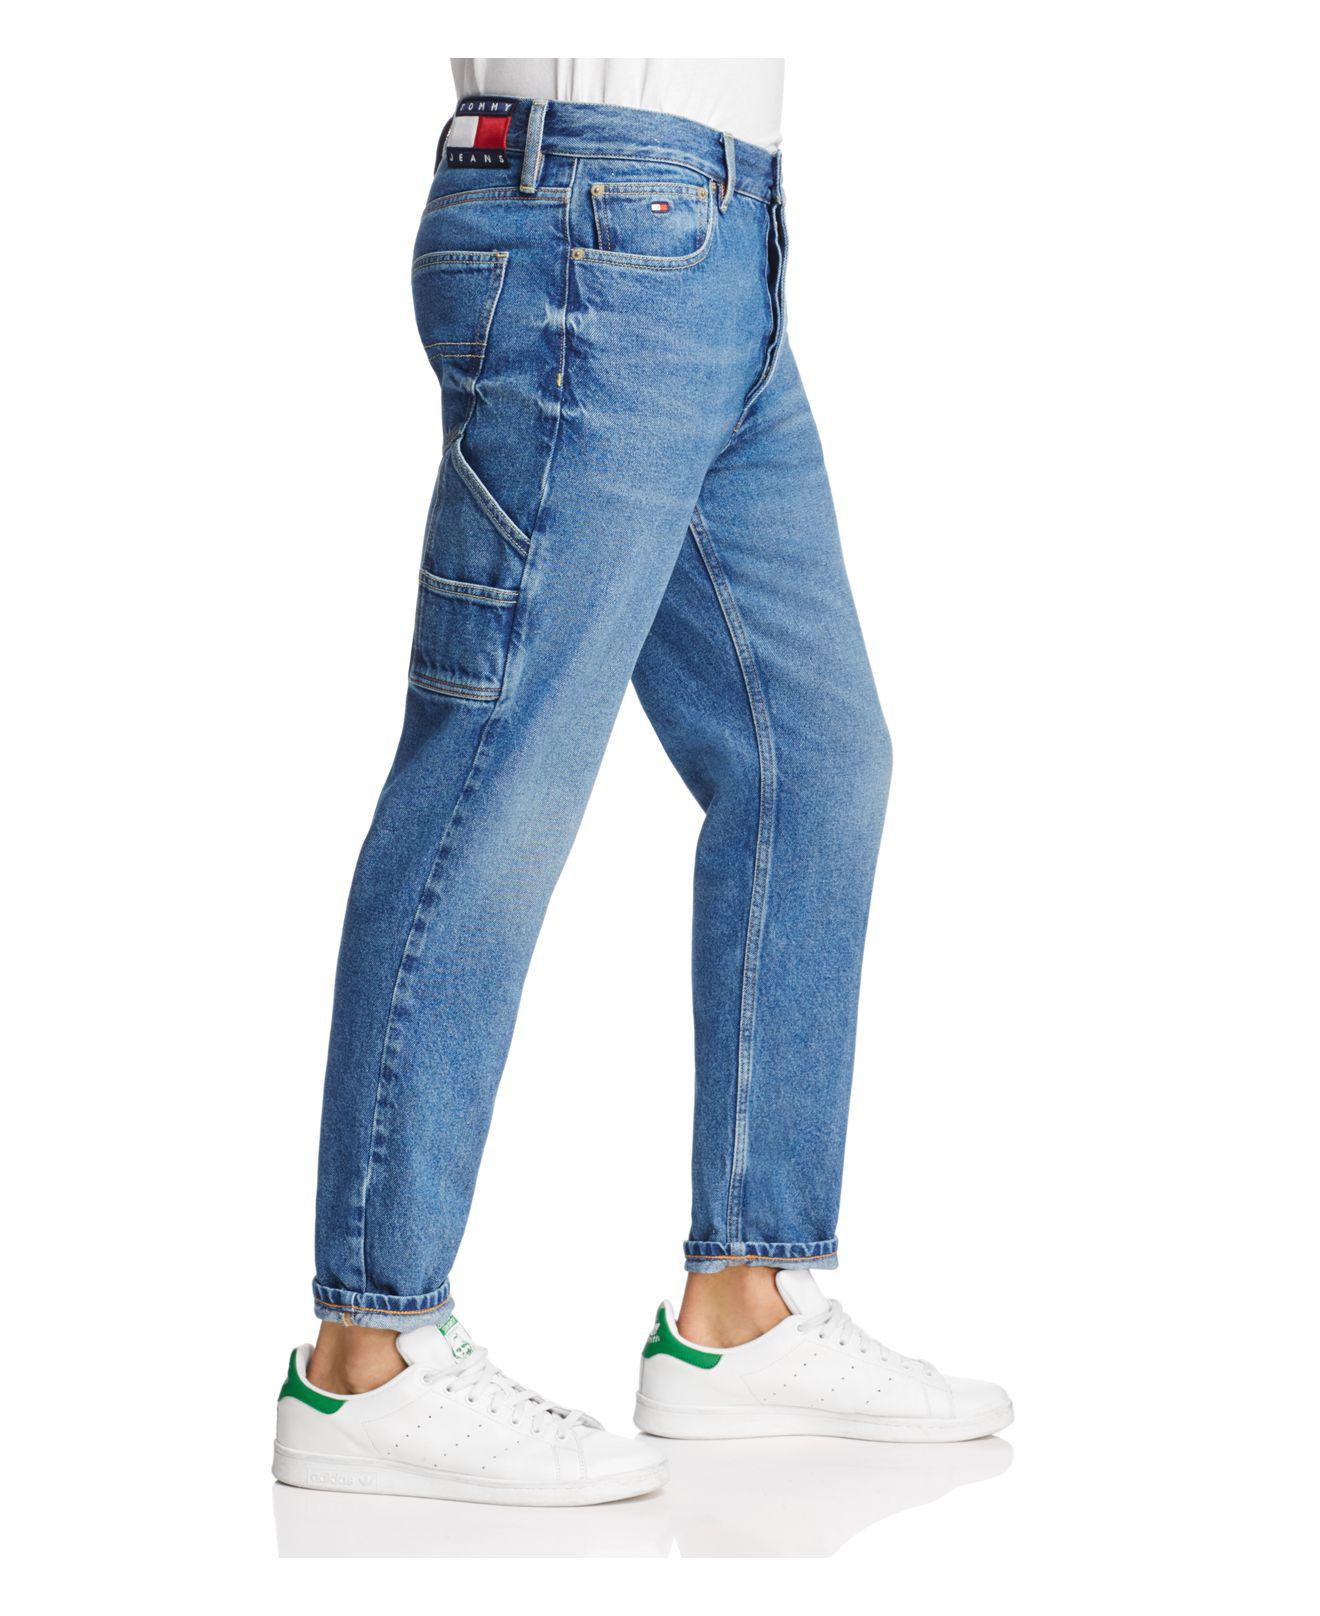 1371832f Tommy Hilfiger Tapered Fit Carpenter Jeans In Dark Wash in Blue for ...